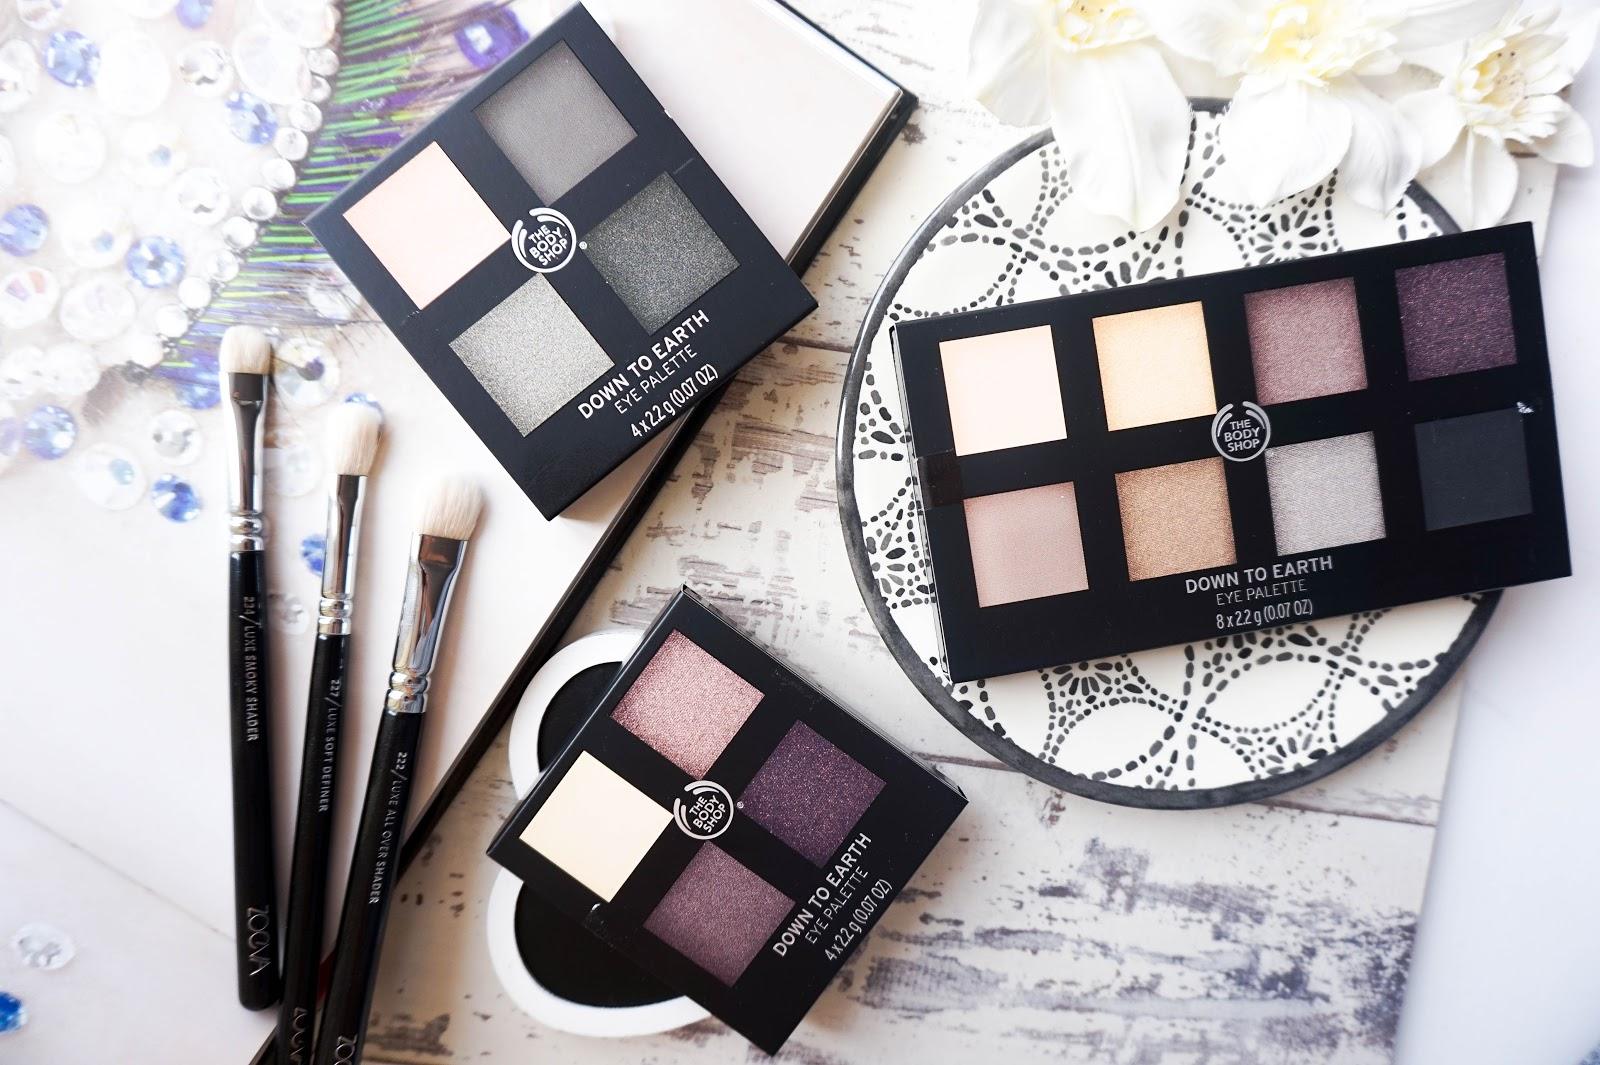 The Body Shop Down To Earth Eyeshadow Palettes